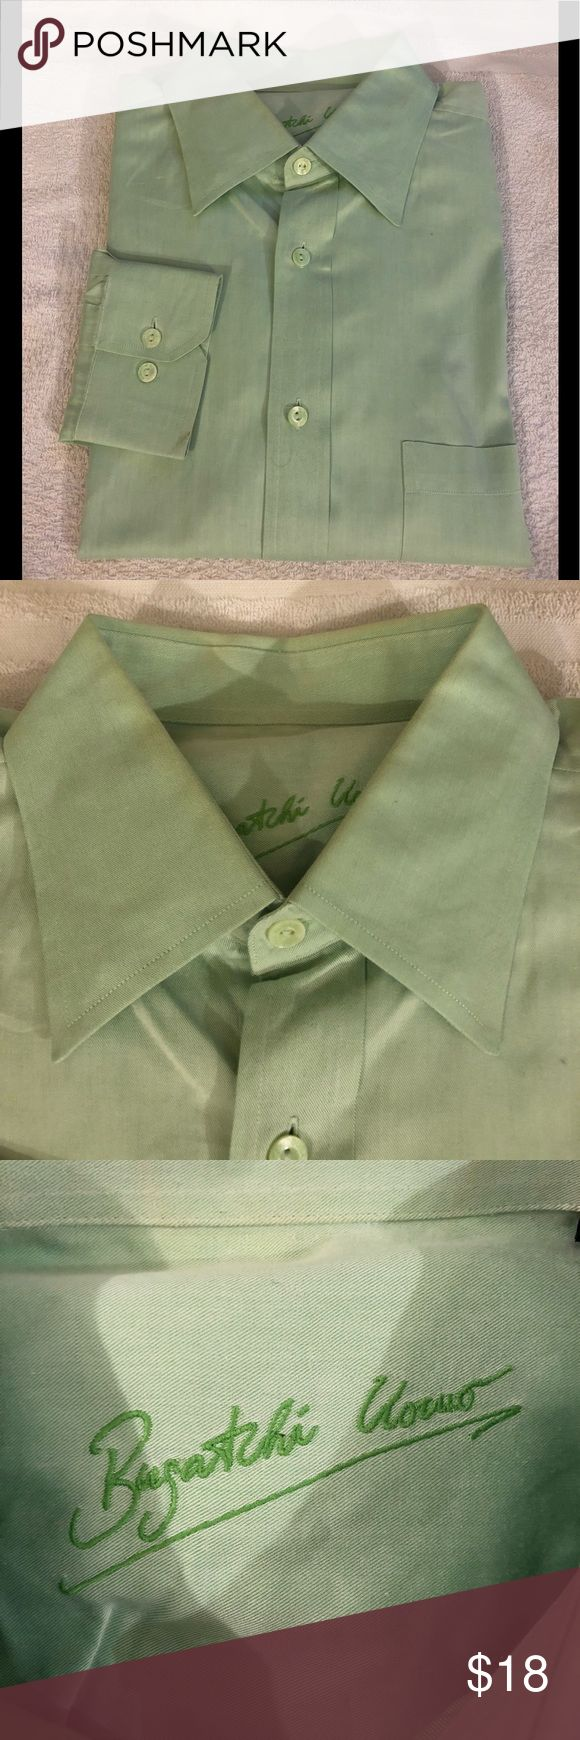 Bugatchi Uomo Solid Mint Green Shirt L Bugatchi Uomo Solid Mint Green Long Sleeve Shirt size L! Great condition! Please make reasonable offers and bundle! Ask questions! Bugatchi Shirts Casual Button Down Shirts